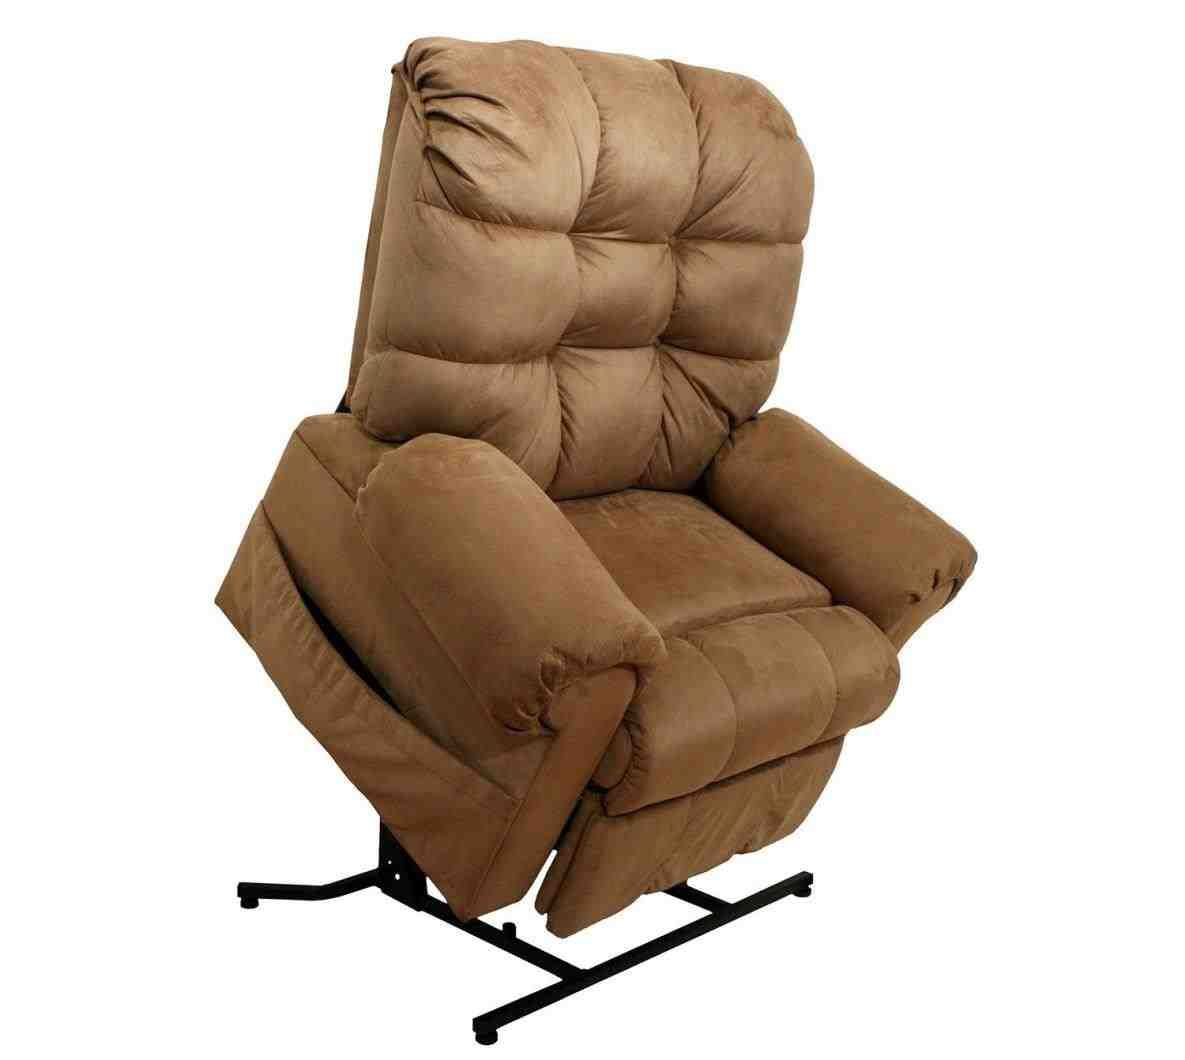 chair and a half recliner patterned chair and half recliner chair and half recliner glider room awesome rocker chair for modern family chairs bring charm to your